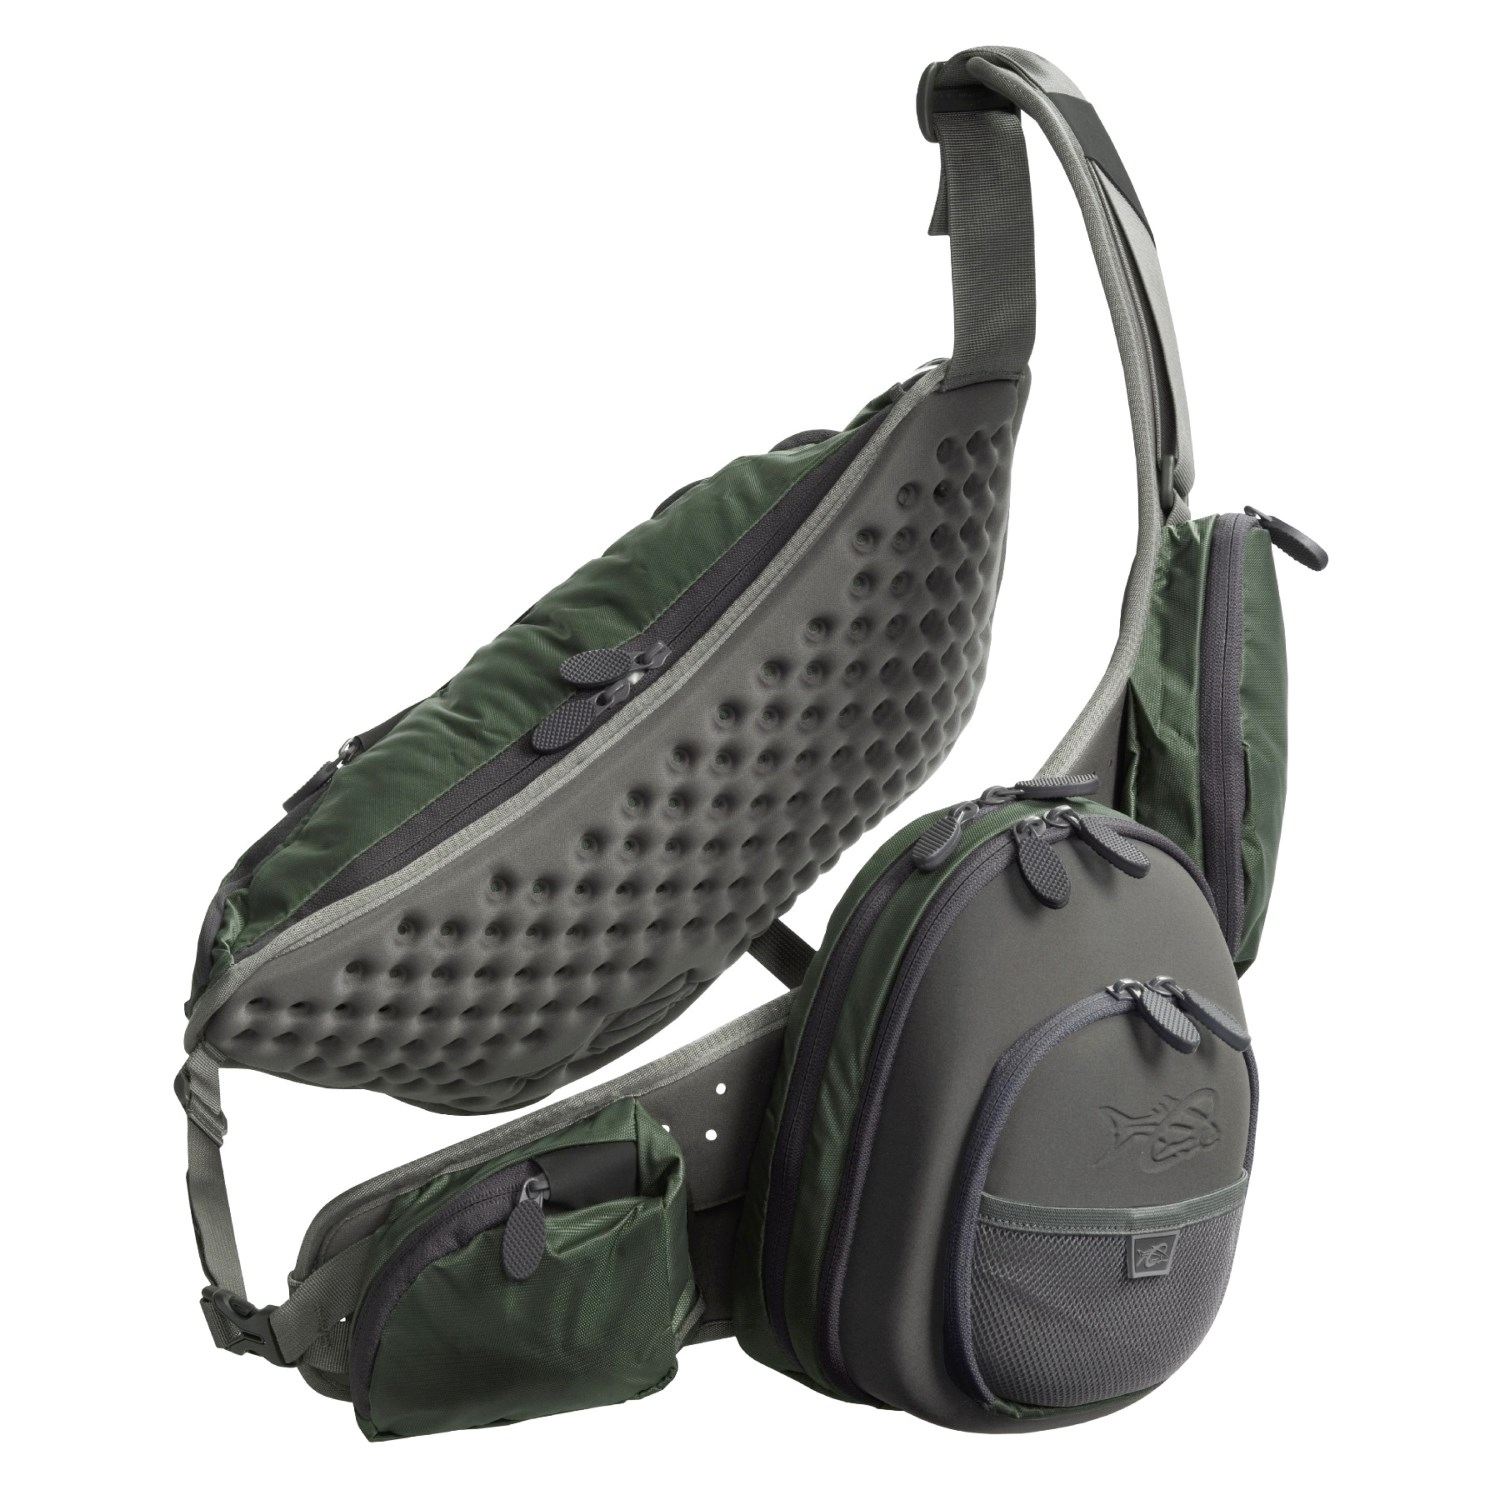 William joseph equinox fly fishing sling pack 1505f save 32 for Fly fishing gear closeouts